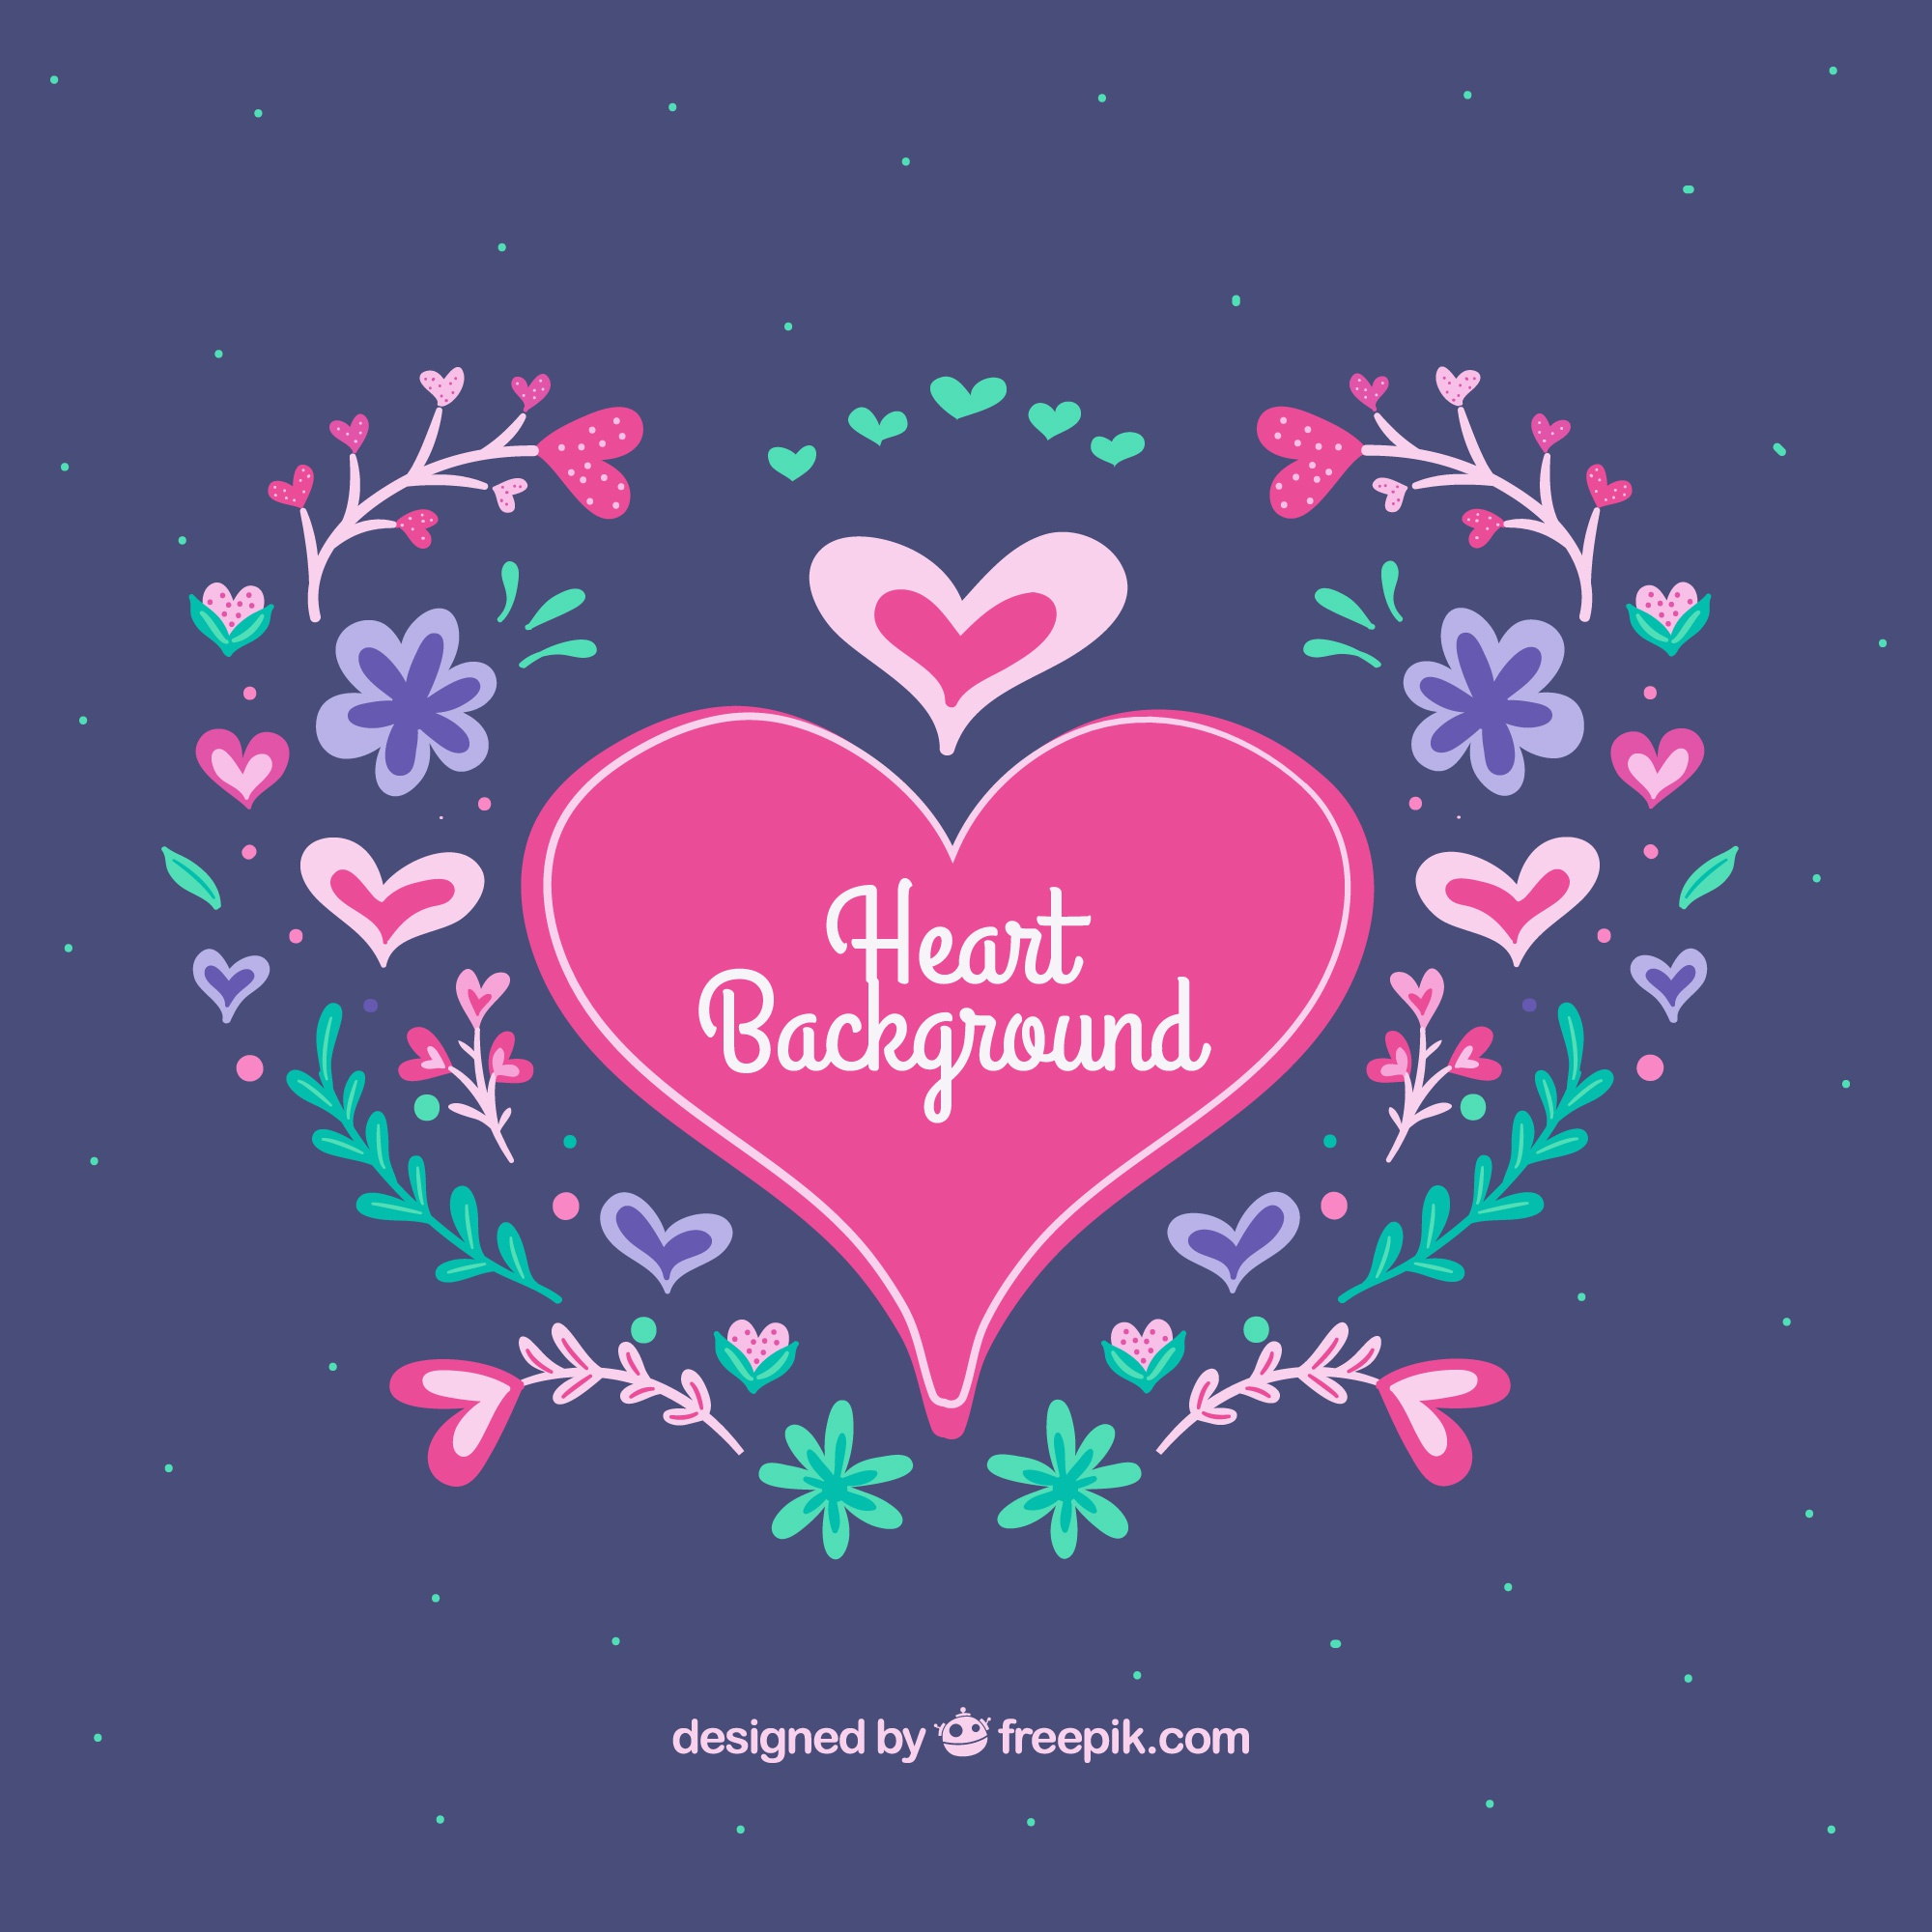 Heart background with flowers